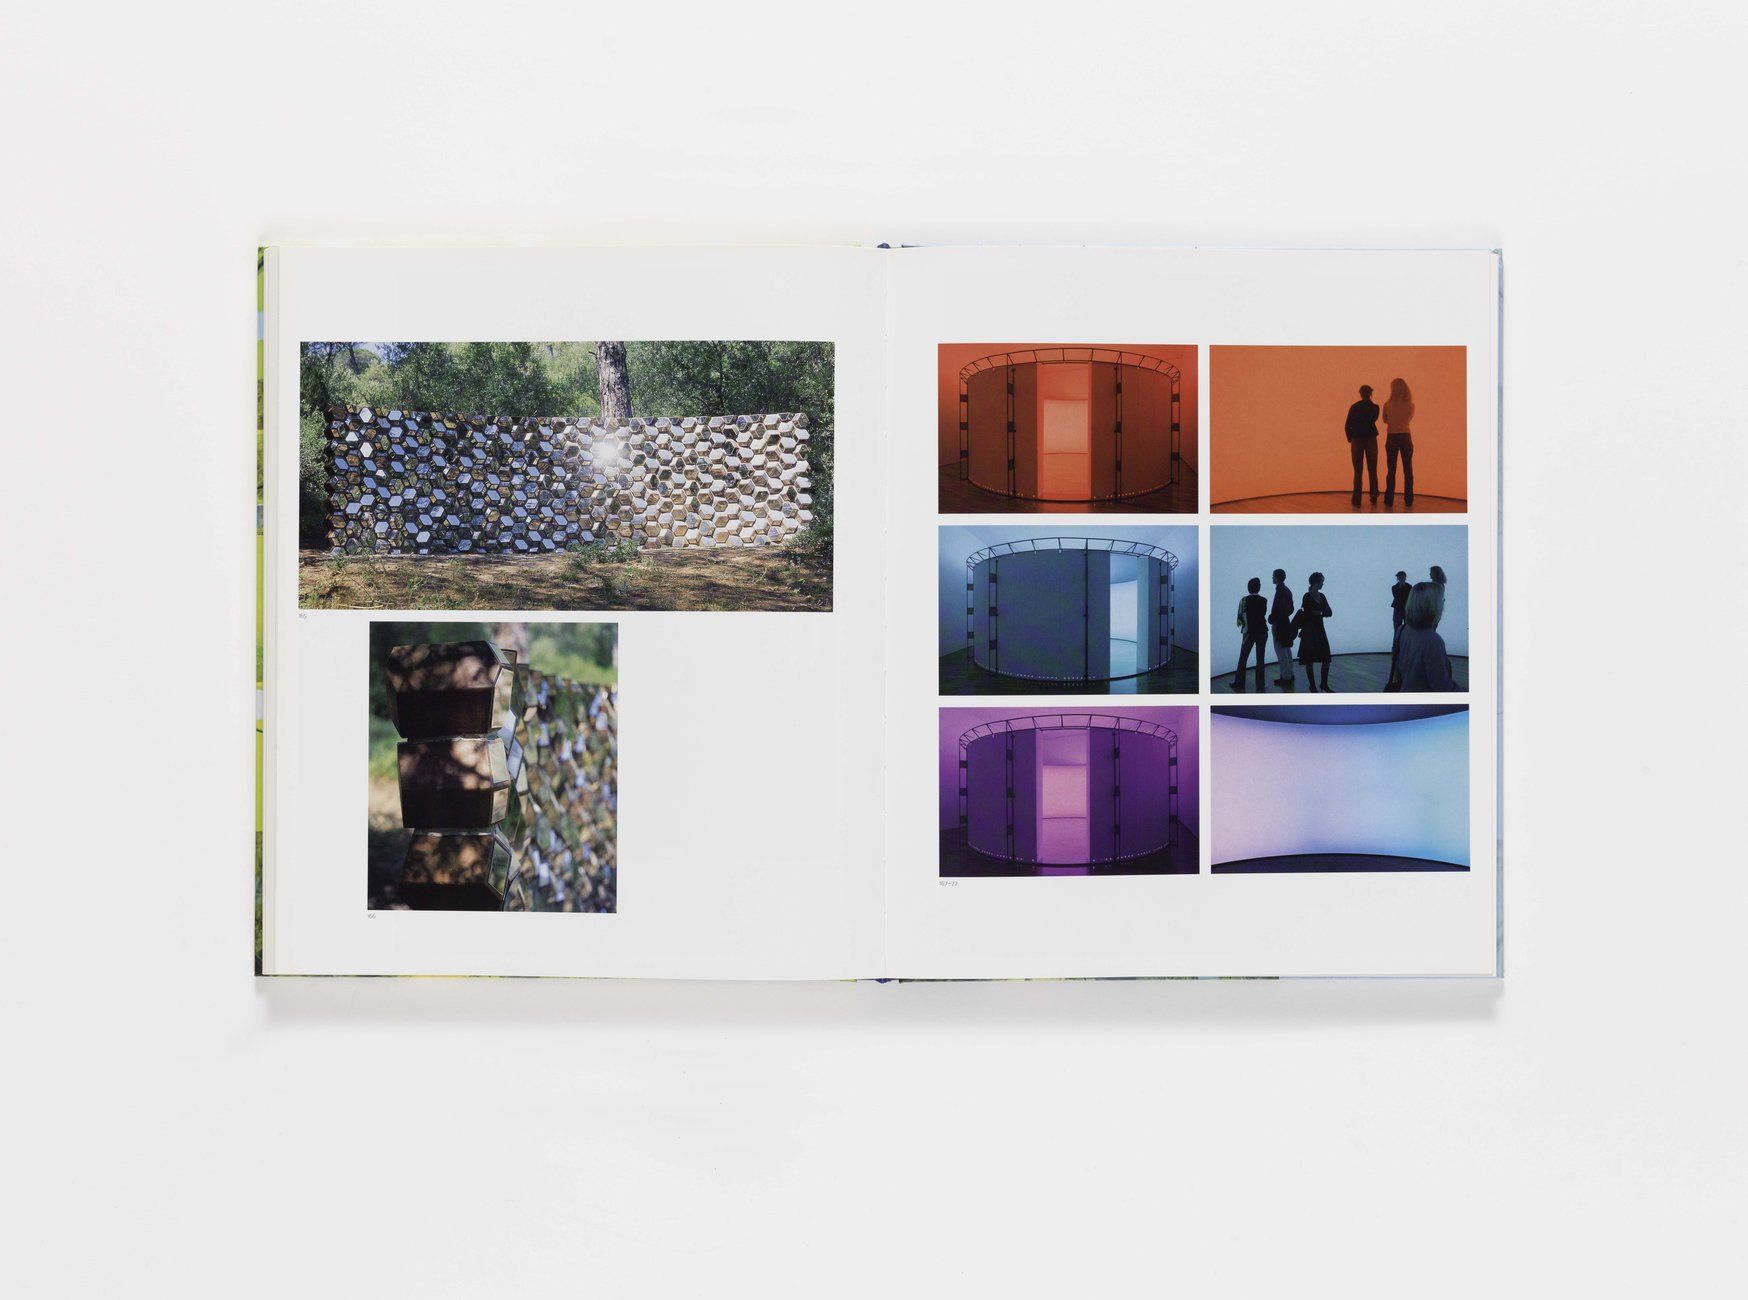 Take Your Time: Olafur Eliasson publication plates 165-172